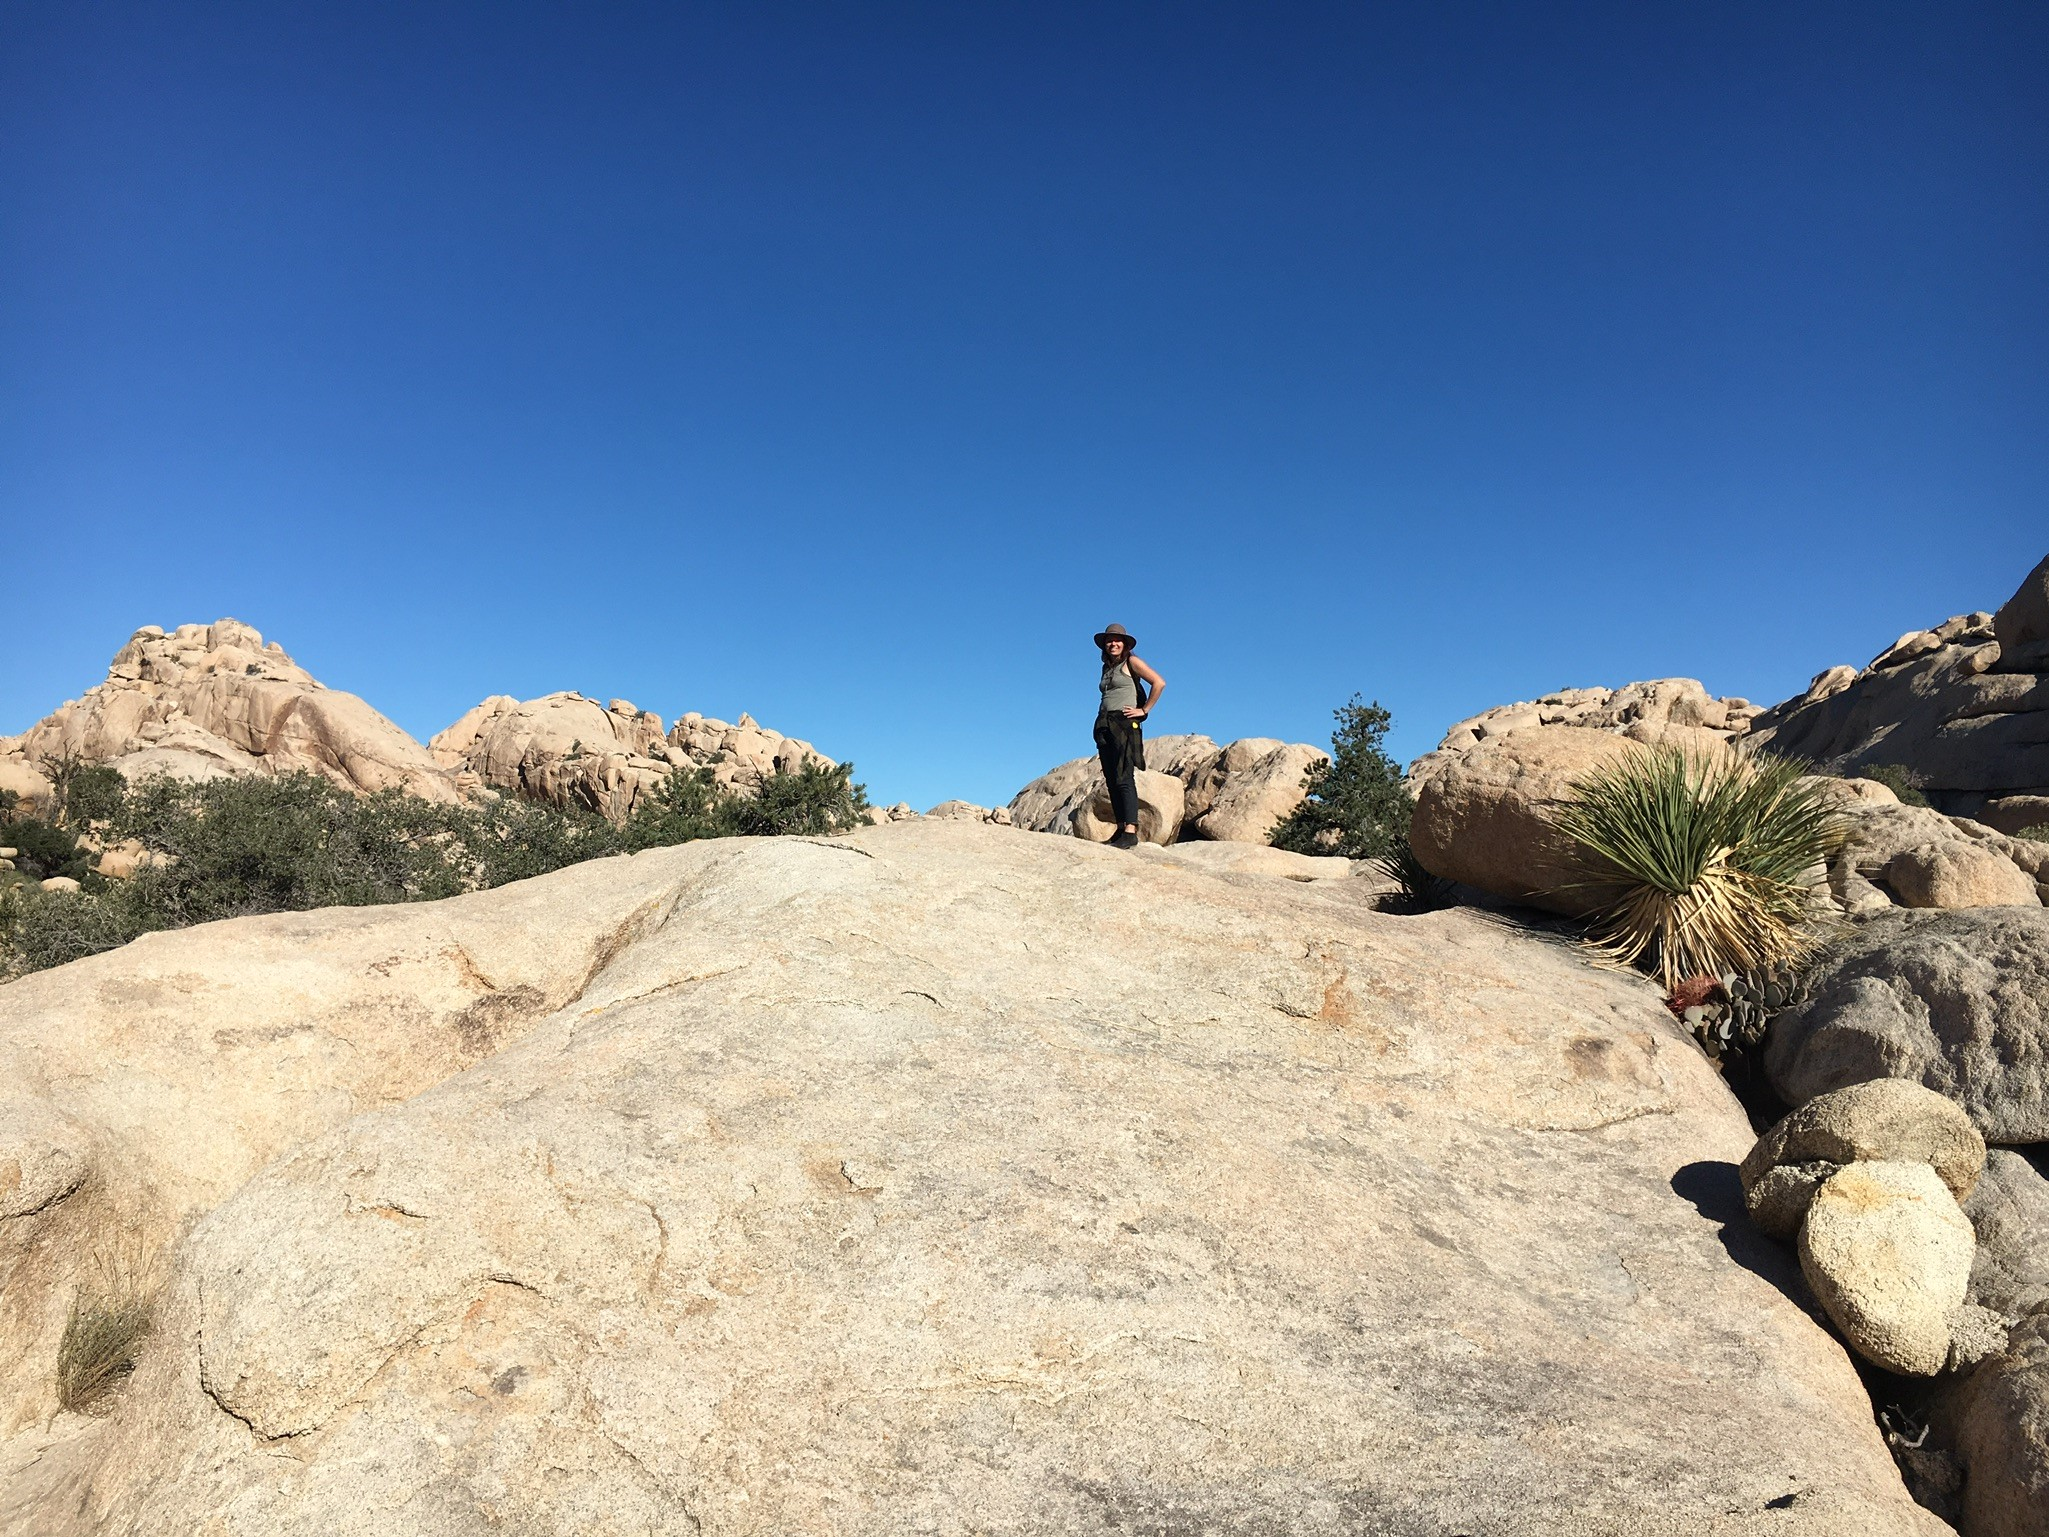 Hiking in Joshua Tree National Park. One of my first memories after the crash.